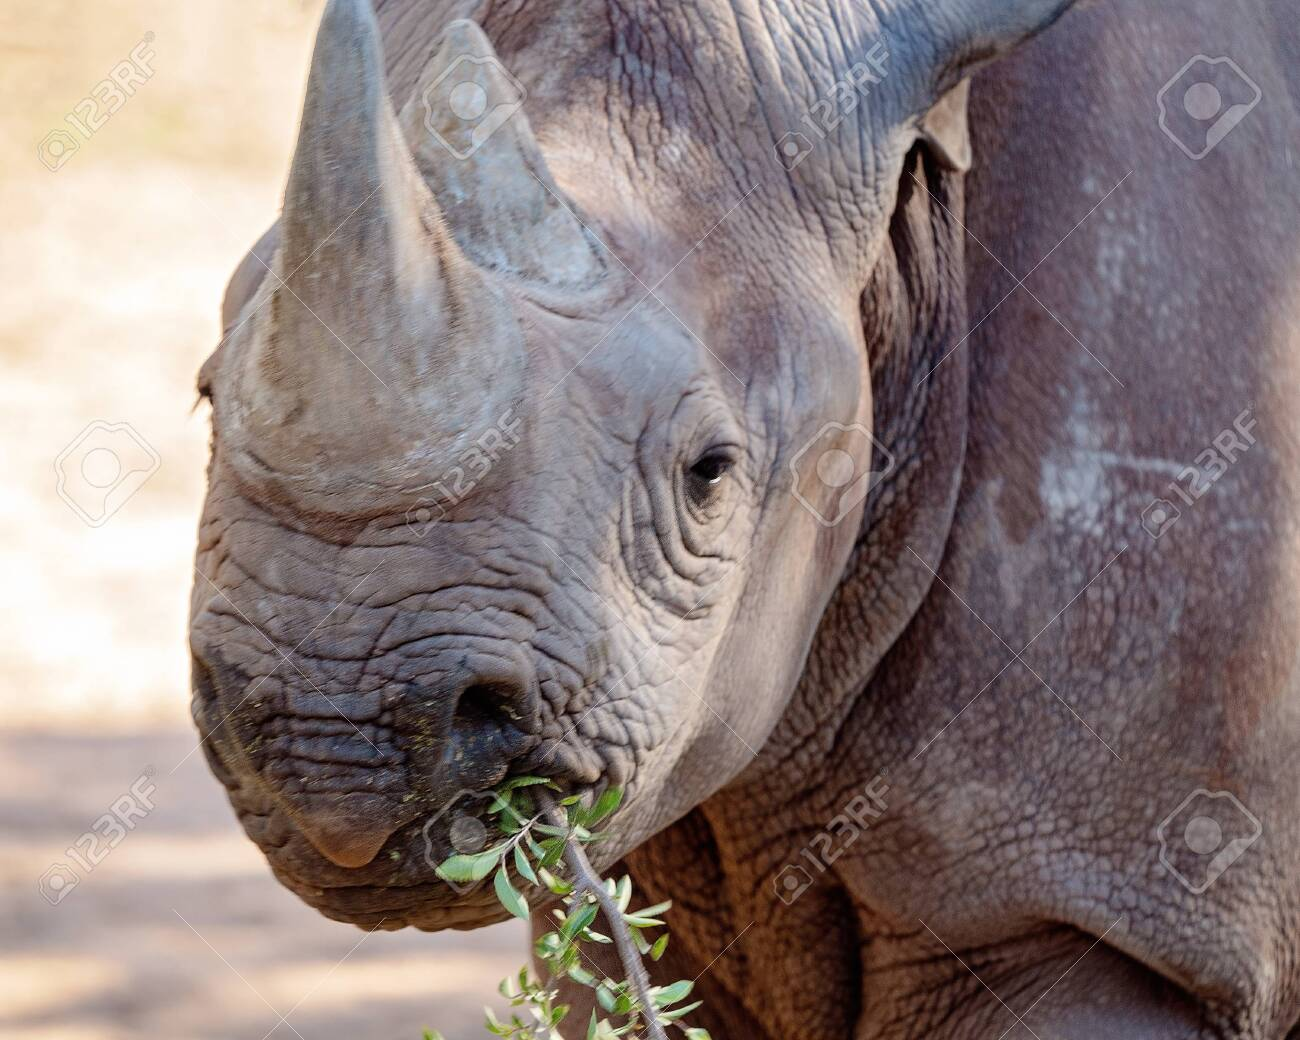 A black rhinoceros, an endangered species, chewing on some bush